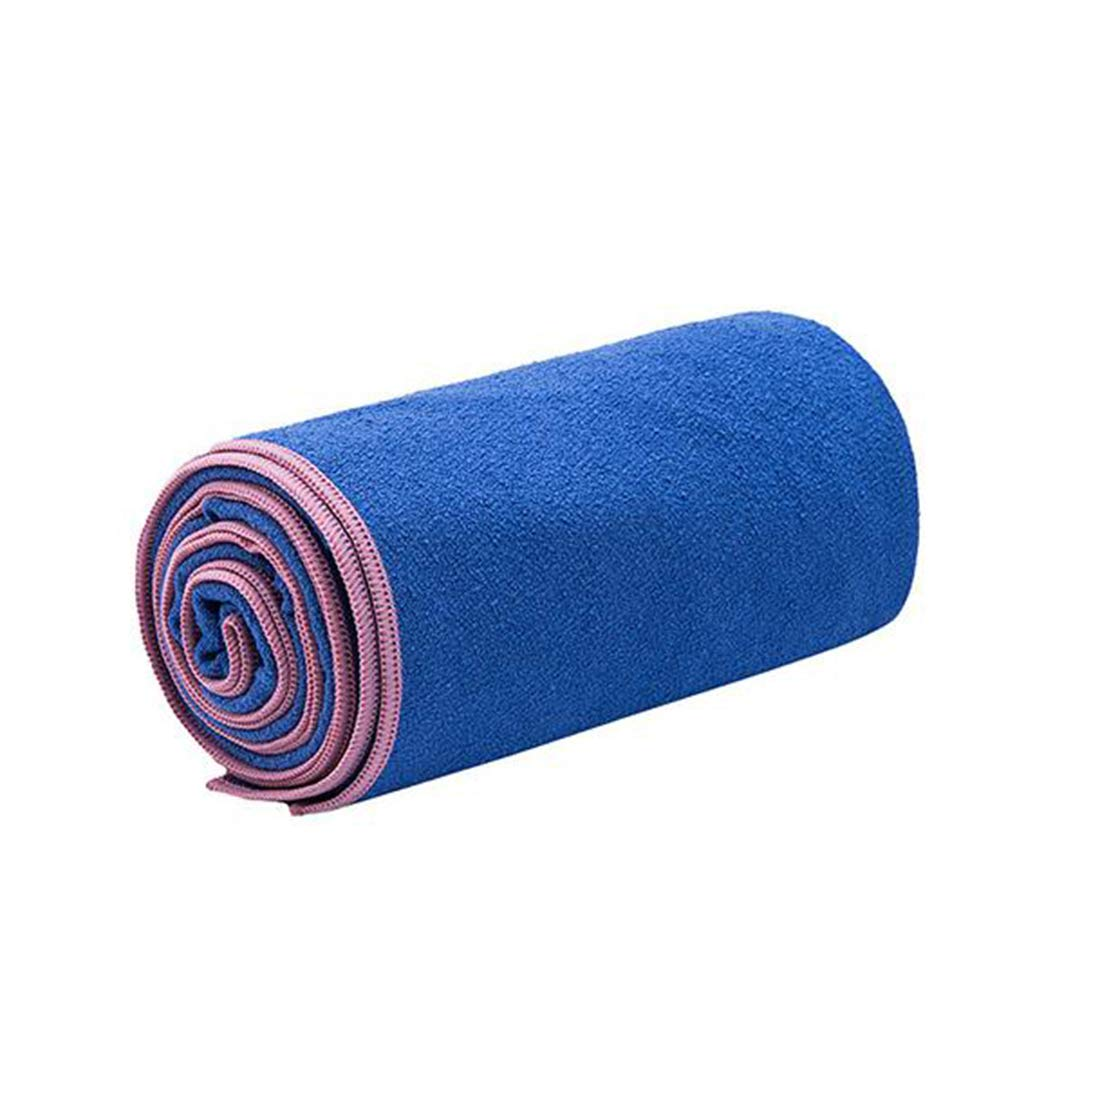 A001 Carriemeow Sweat Absorption Sport Towel Microfiber Dance Mat Environmental NonSlip Fitness Products Solid color Yoga Blanket